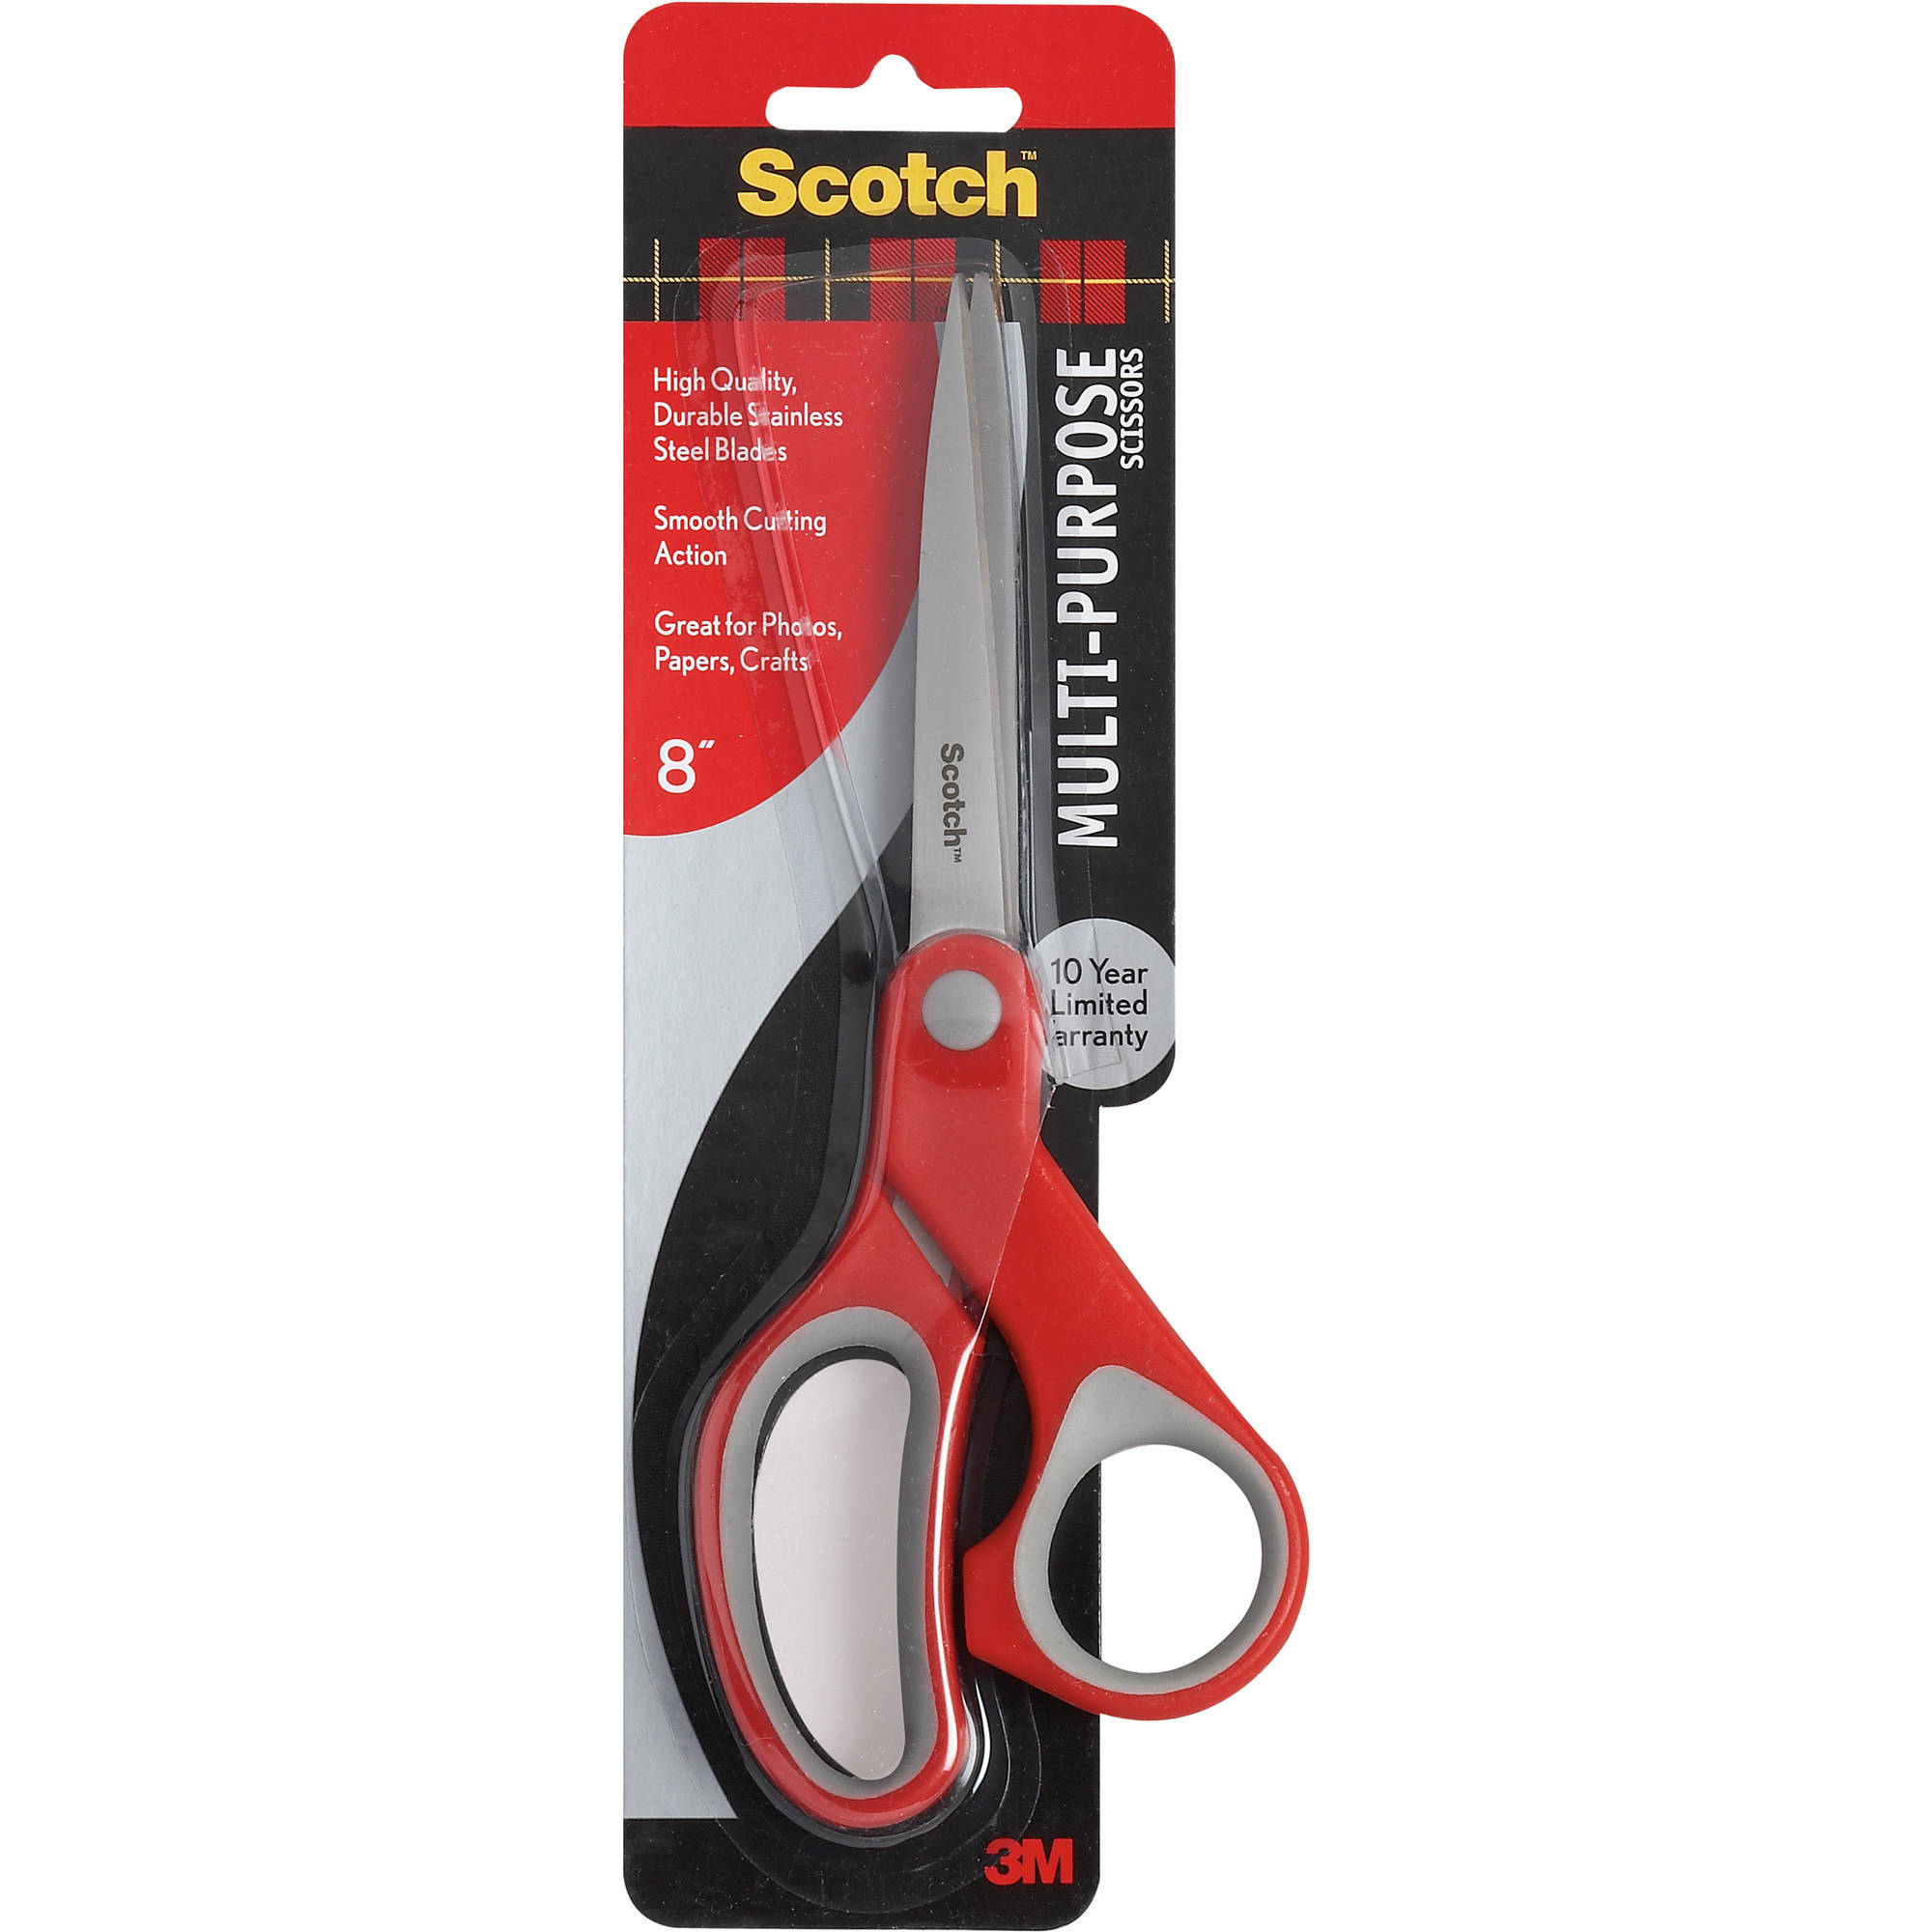 "3M Scotch 8"" Multi-Purpose Scissors, Red"